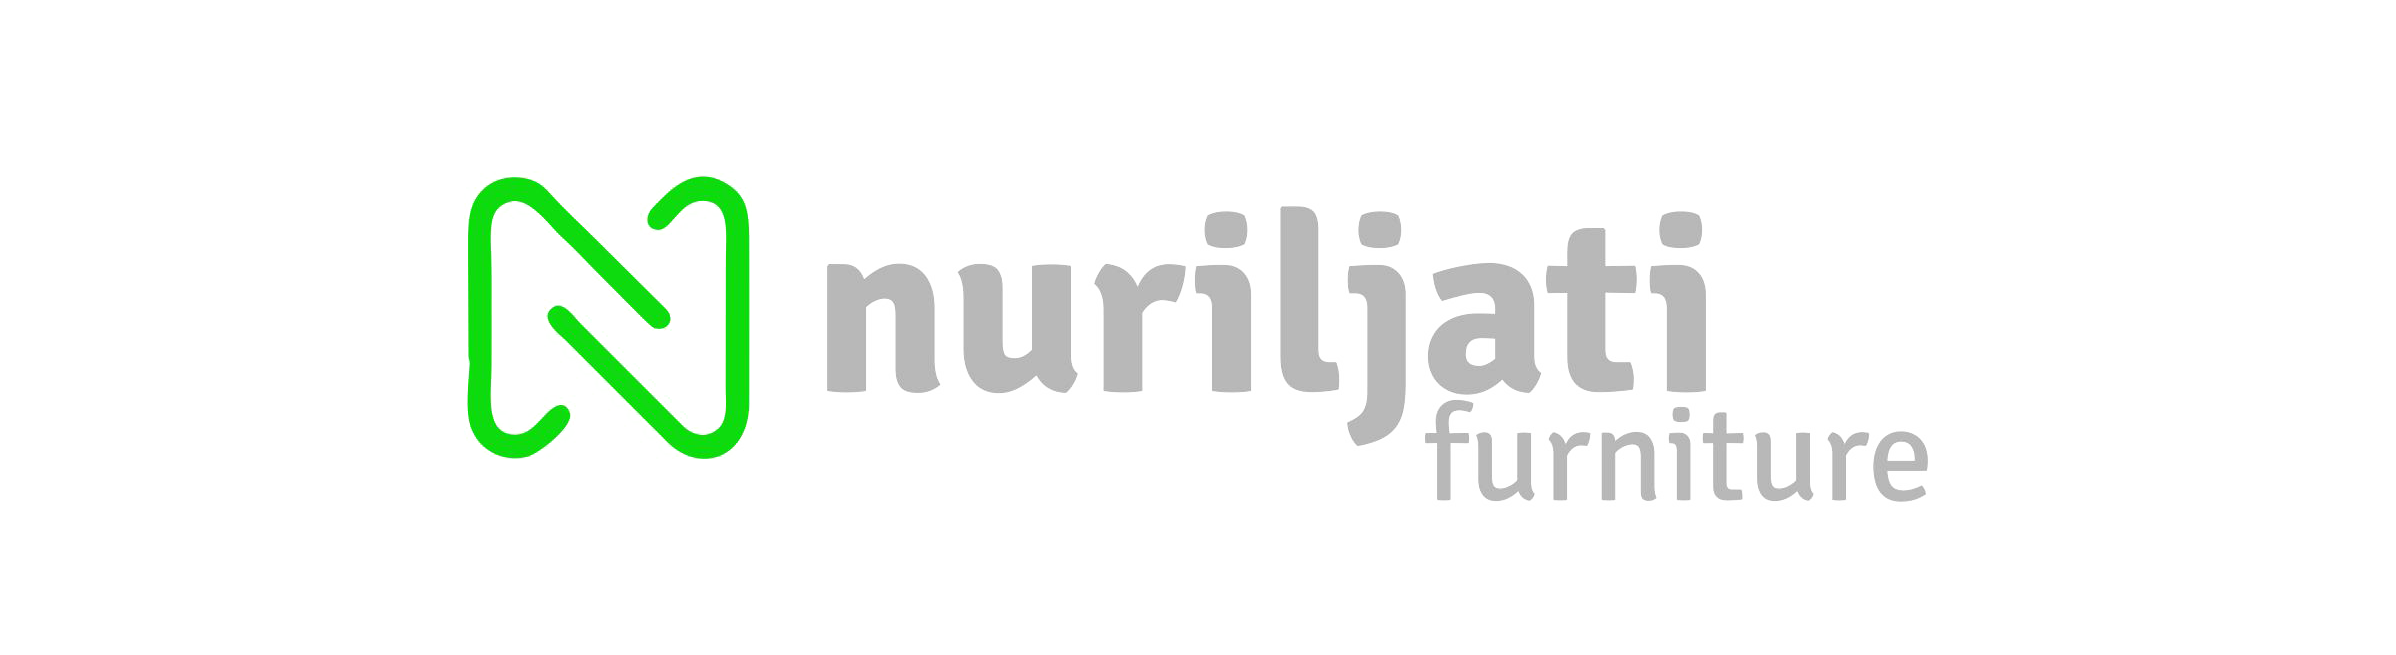 Nuril Jati Furniture